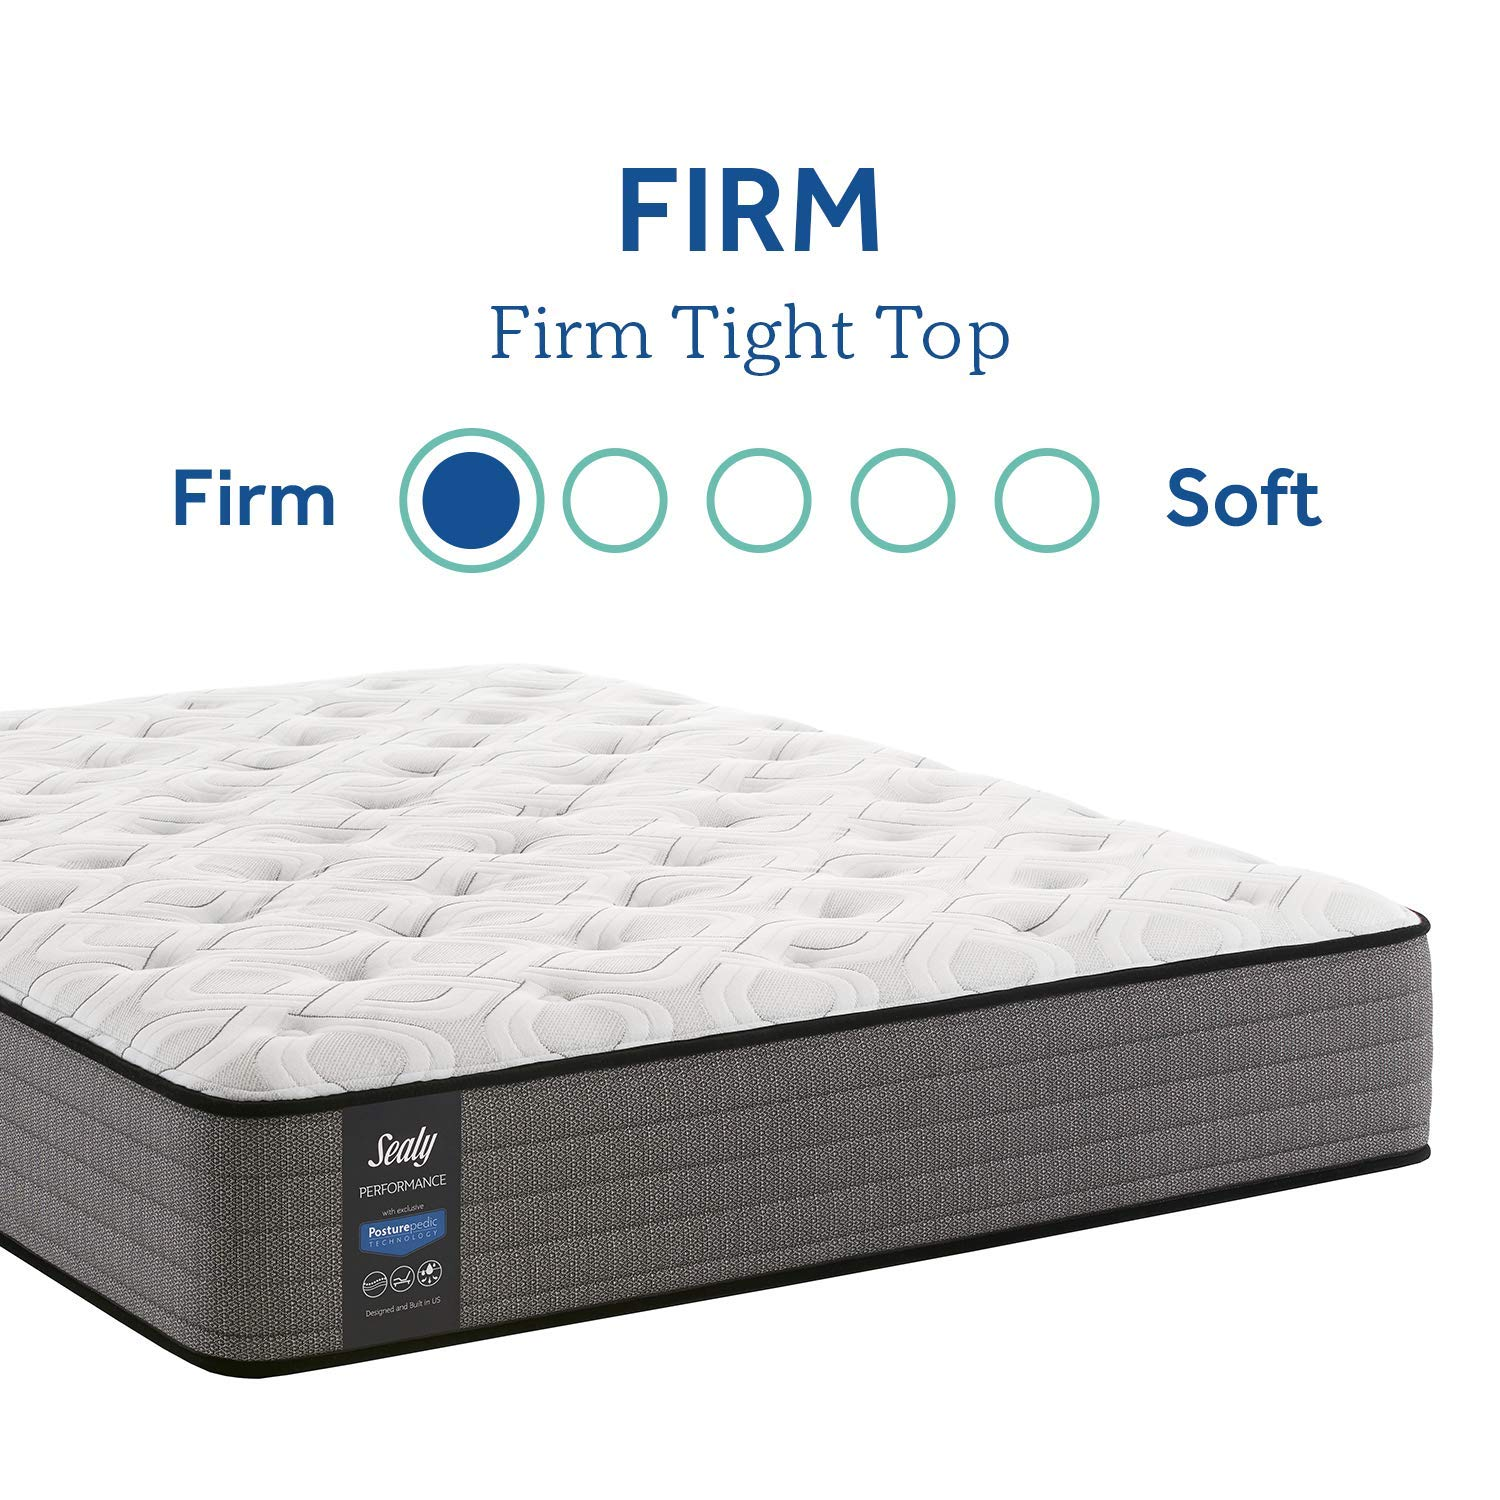 Sealy Response Performance 11-Inch Firm Tight Top Mattress, Queen, White